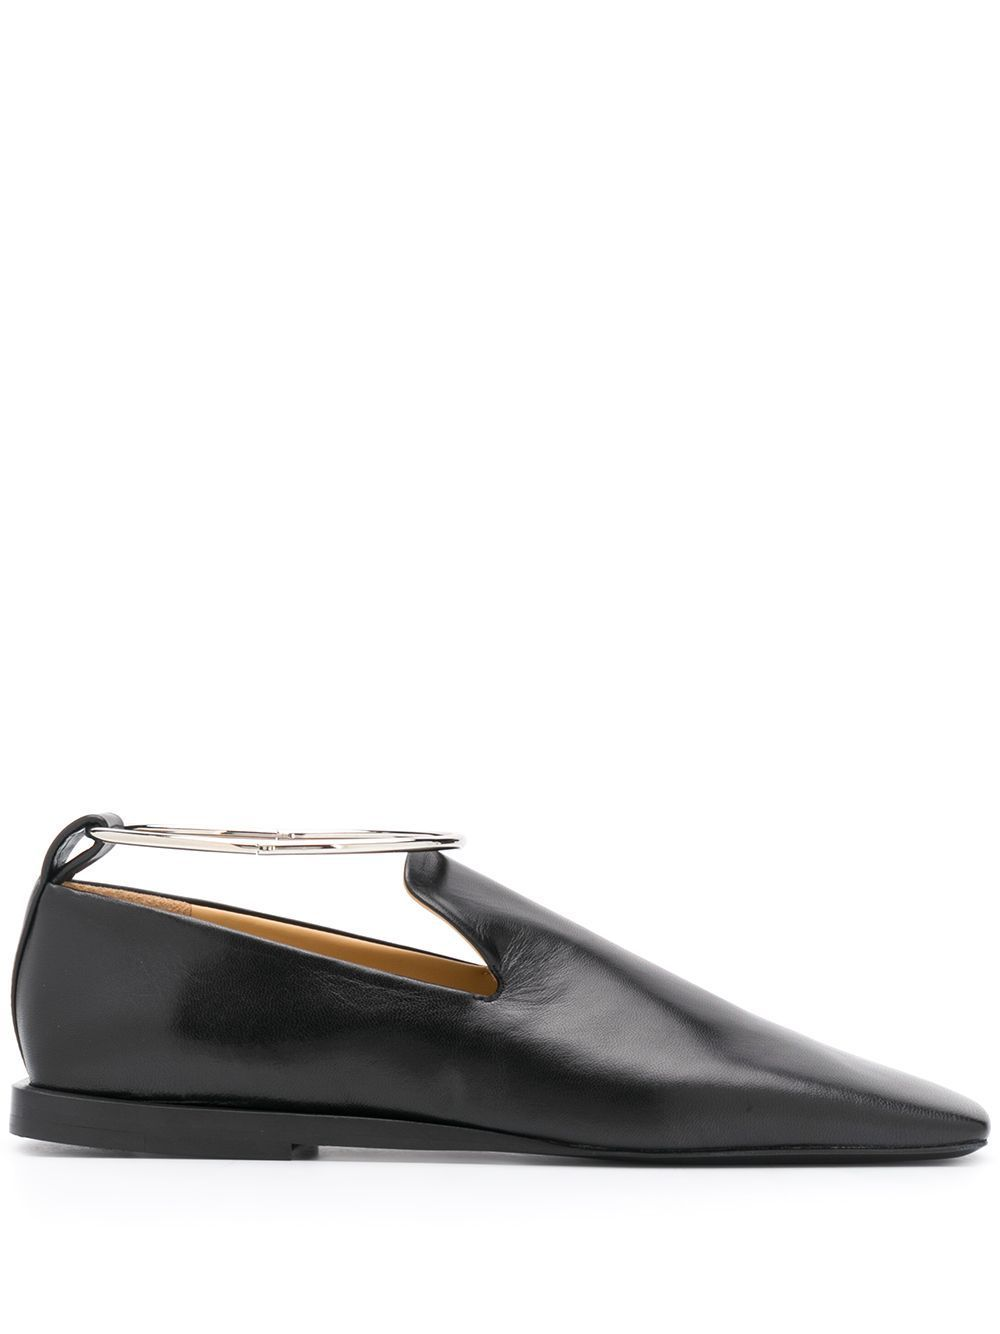 JIL SANDER | ANKLE CUFF SQUARE TOE LOAFERS フラット 黒 (Jil Sander/フラットシューズ) JS35019A 12010 998